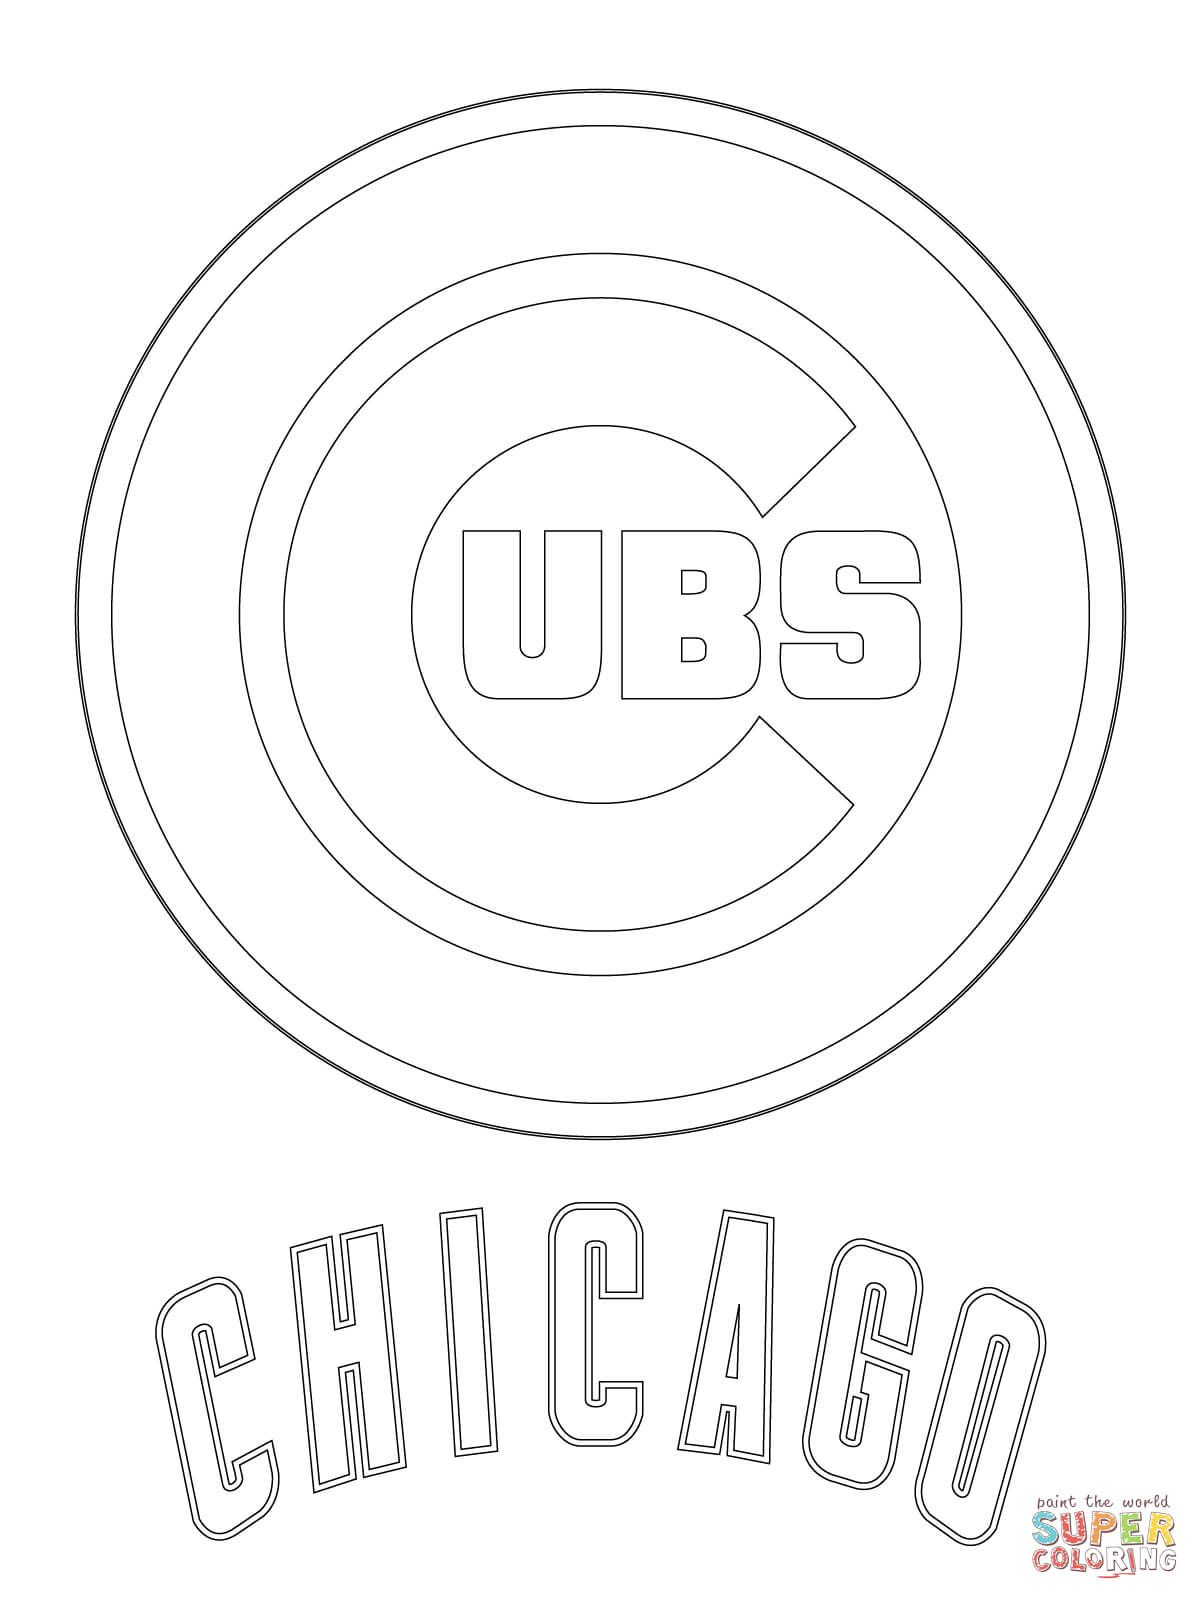 Chicago Cubs Logo Coloring Page Free Printable Coloring Pages Baseball Coloring Pages Coloring Pages Chicago Cubs